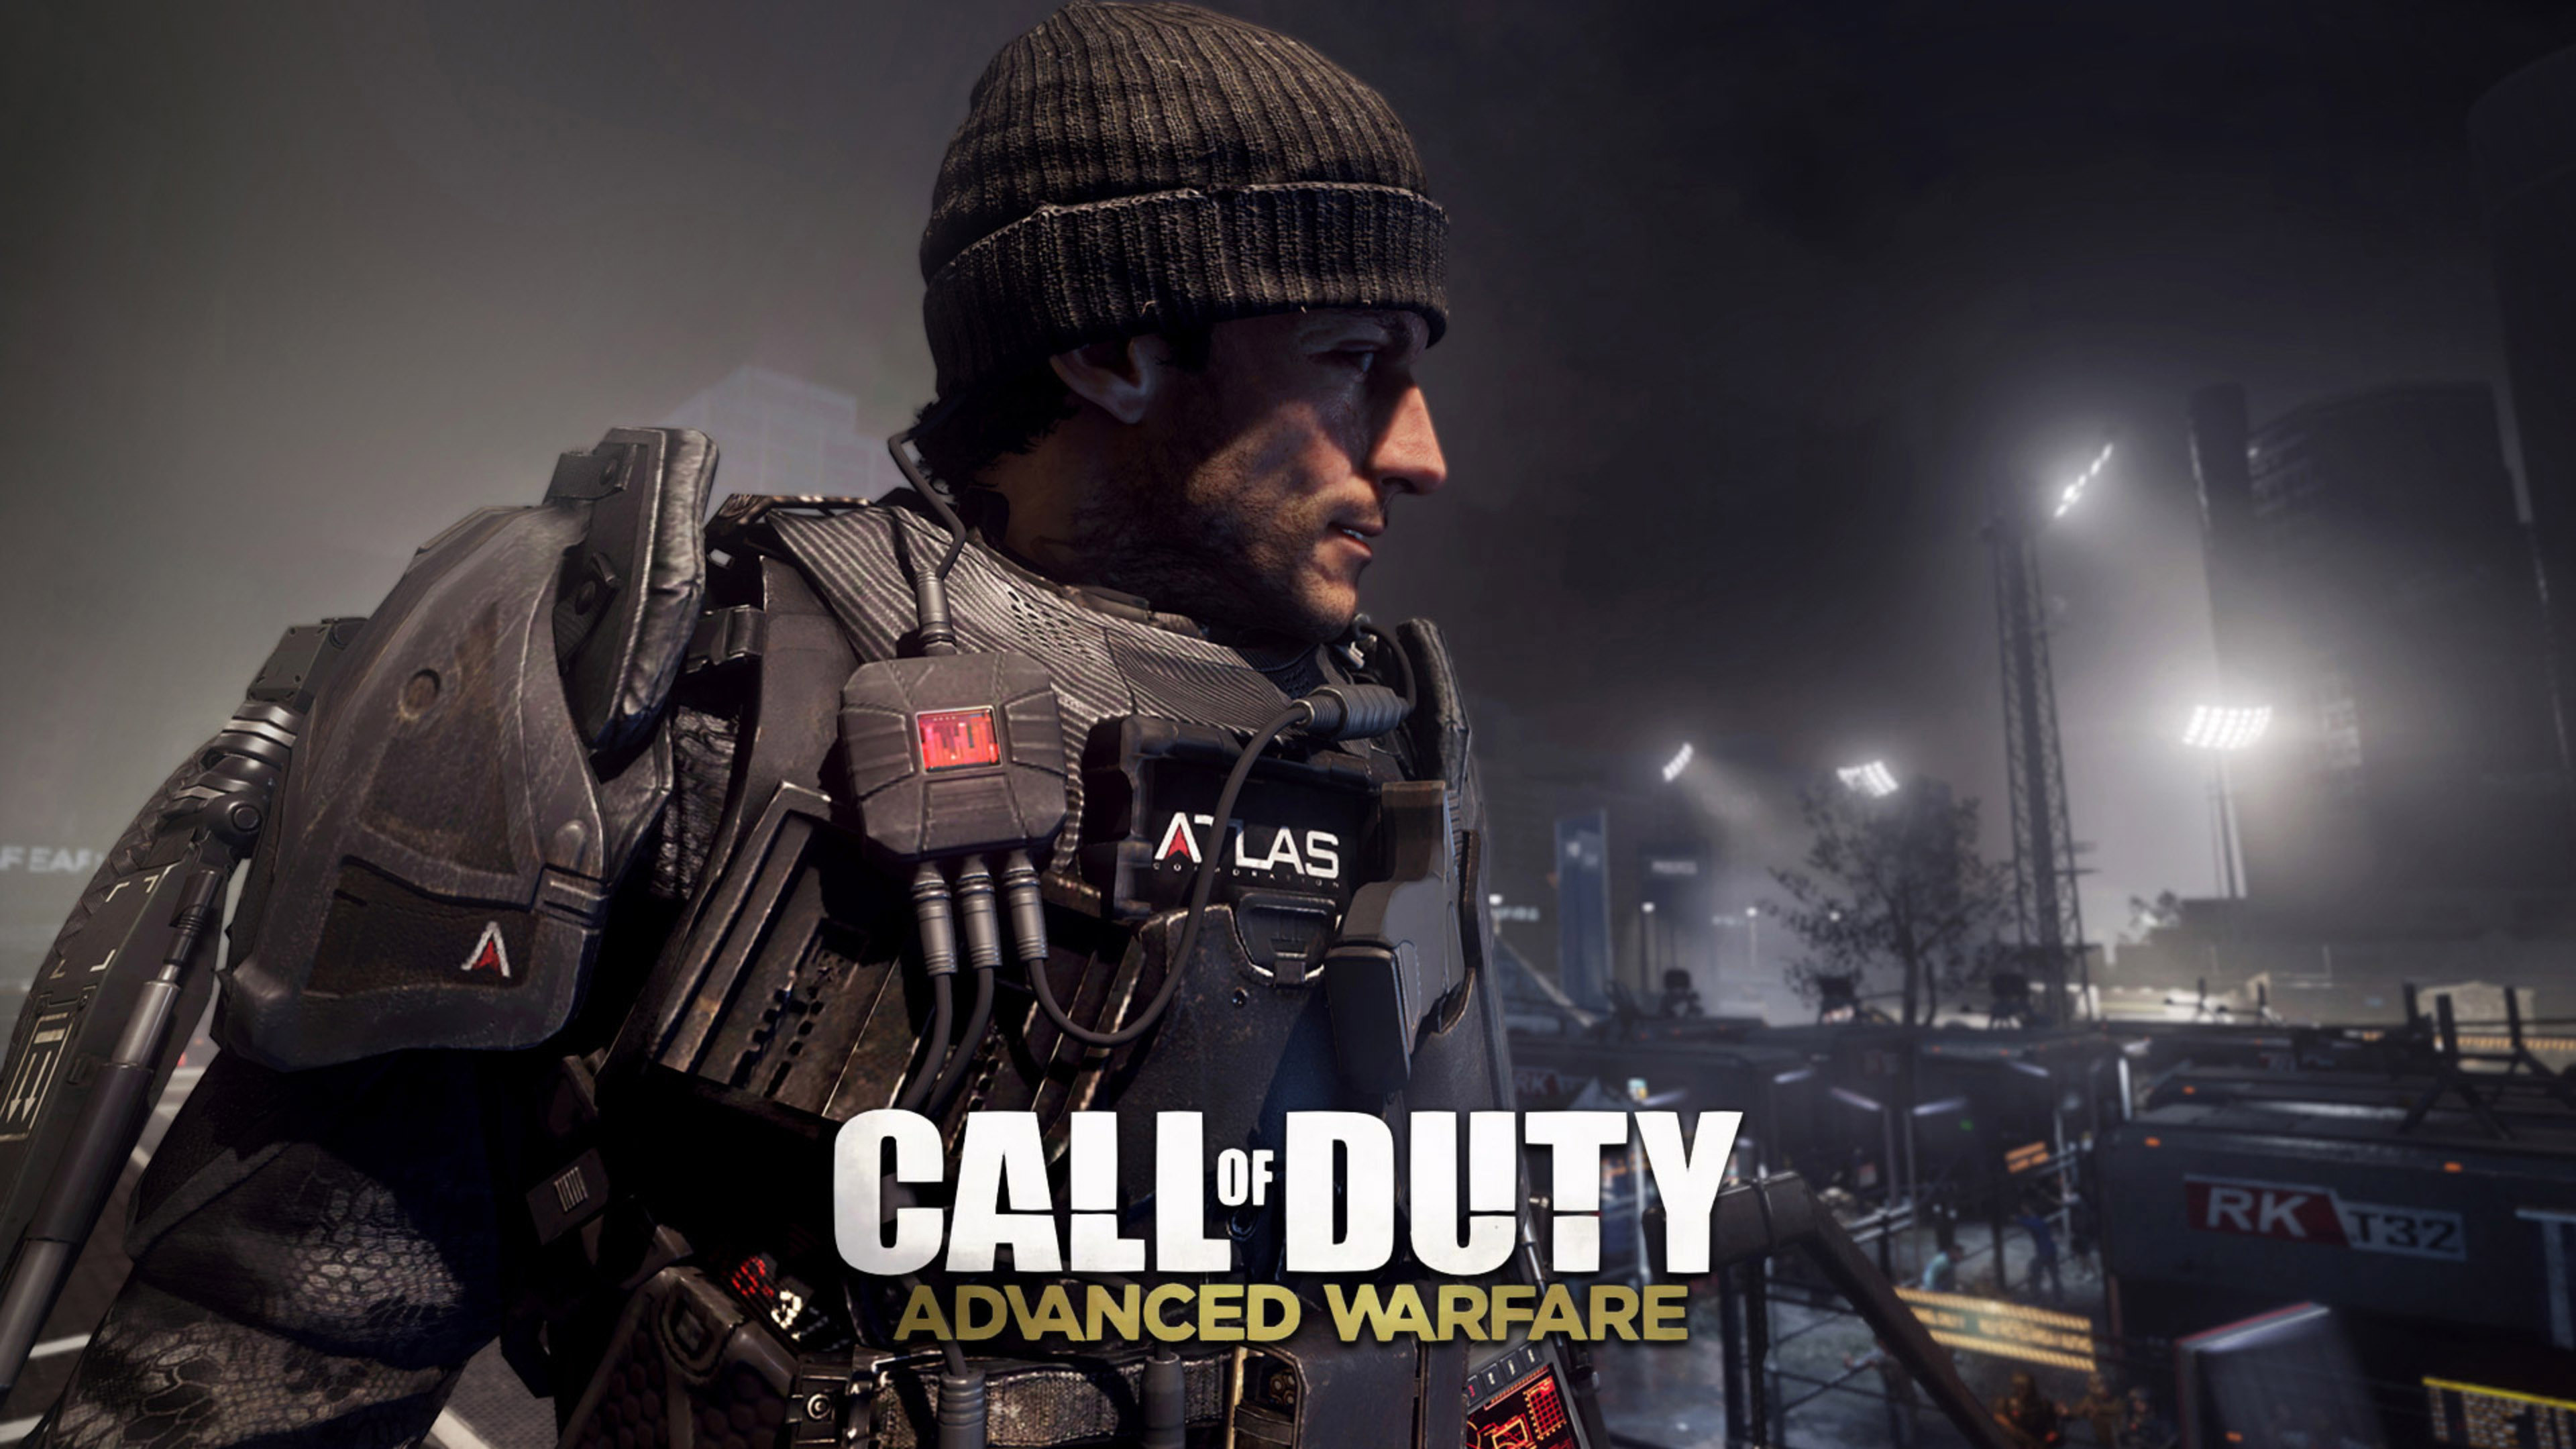 Free Download Call Of Duty Advanced Warfare Ps4 Wallpapers Ps4 3840x2160 For Your Desktop Mobile Tablet Explore 47 Call Of Duty 4 Wallpaper Modern Warfare Wallpaper Call Of Duty Hd Wallpapers